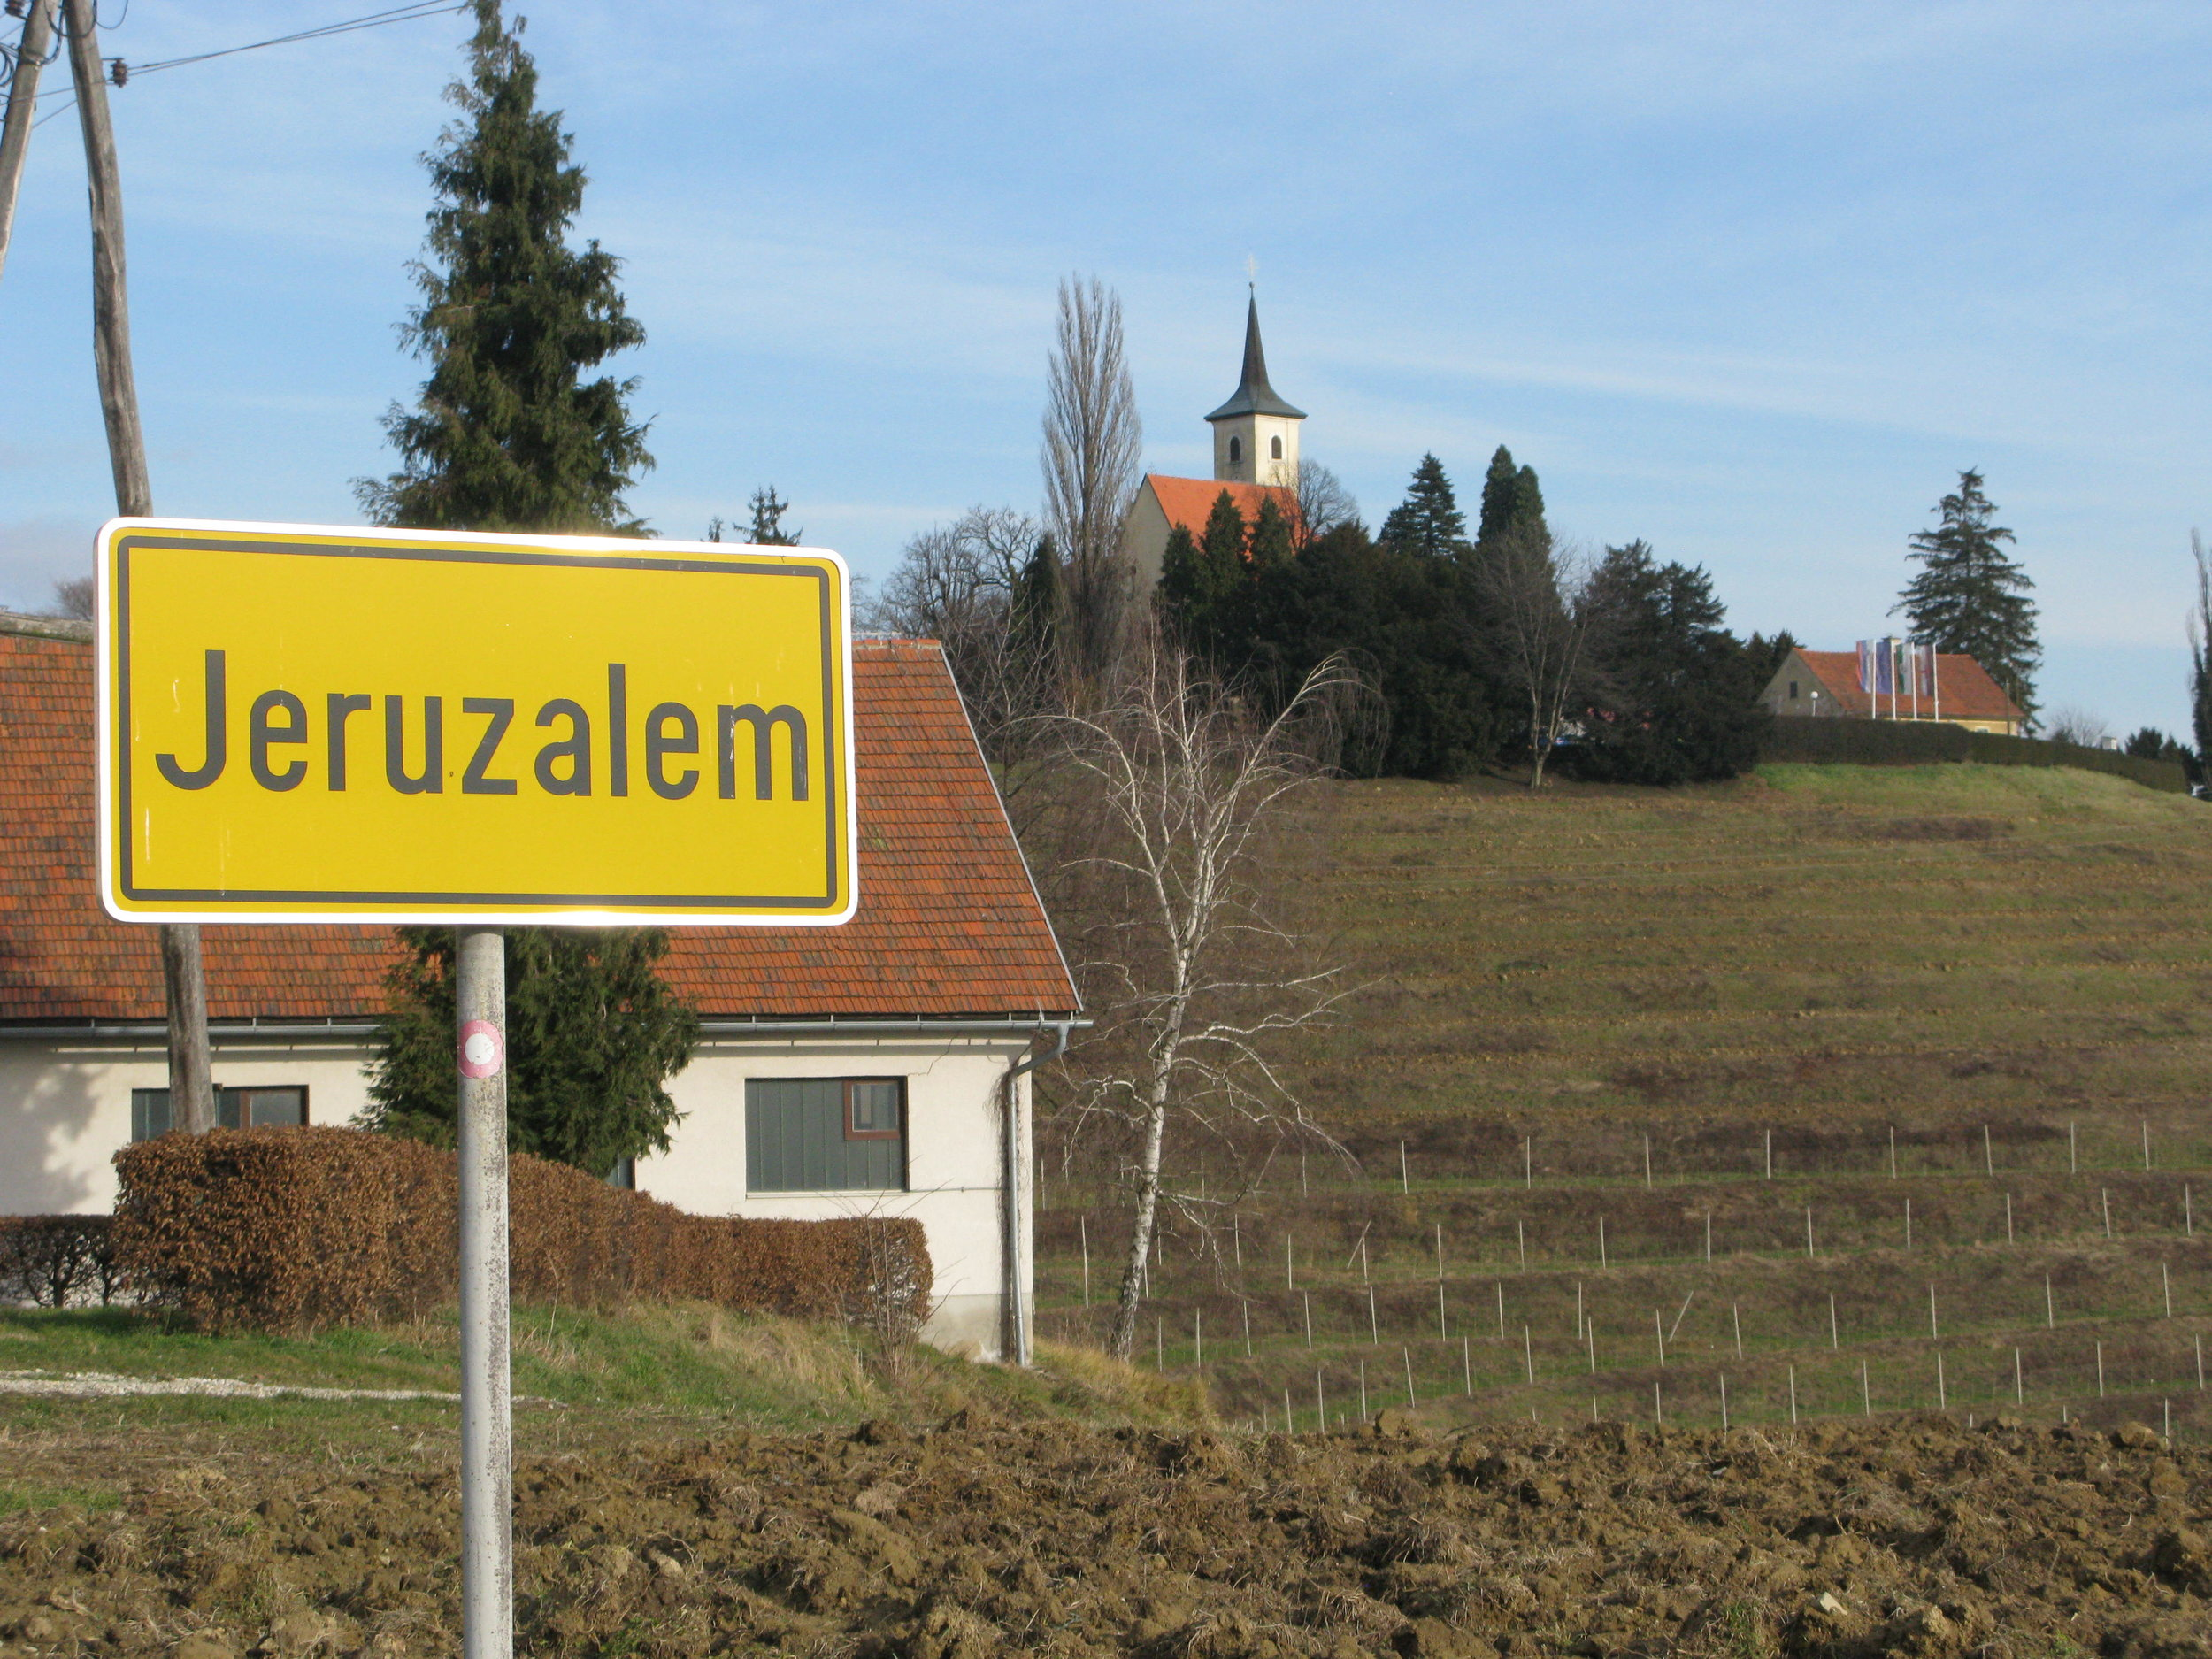 View of Jeruzalem with the sign